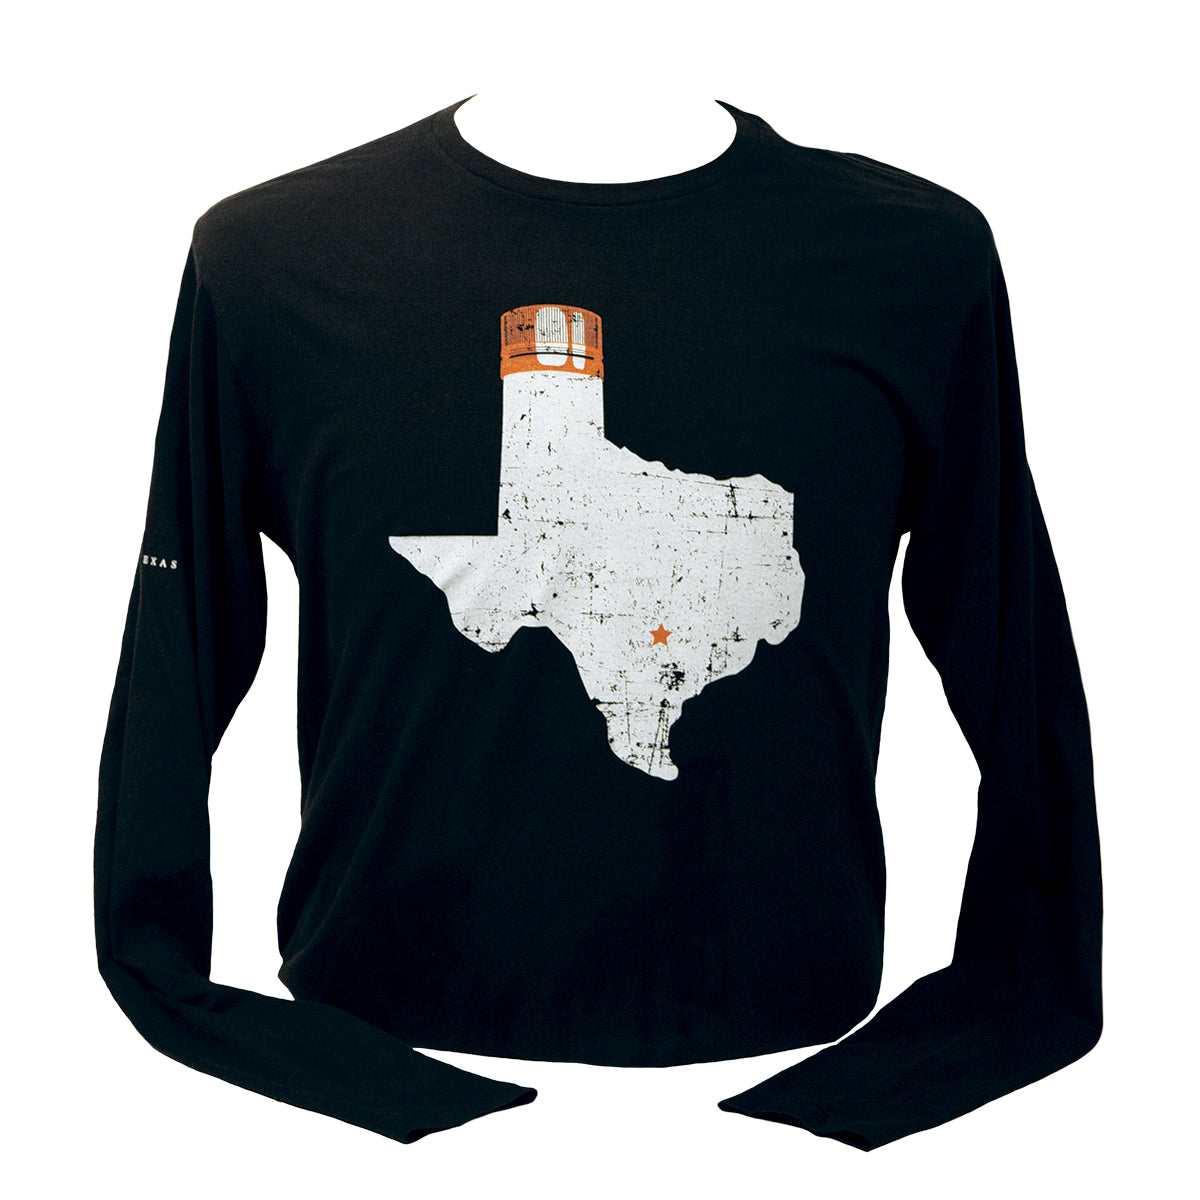 Black long sleeve with large Texas state image, star on Austin's location, and Tito's Copper top on panhandle on front